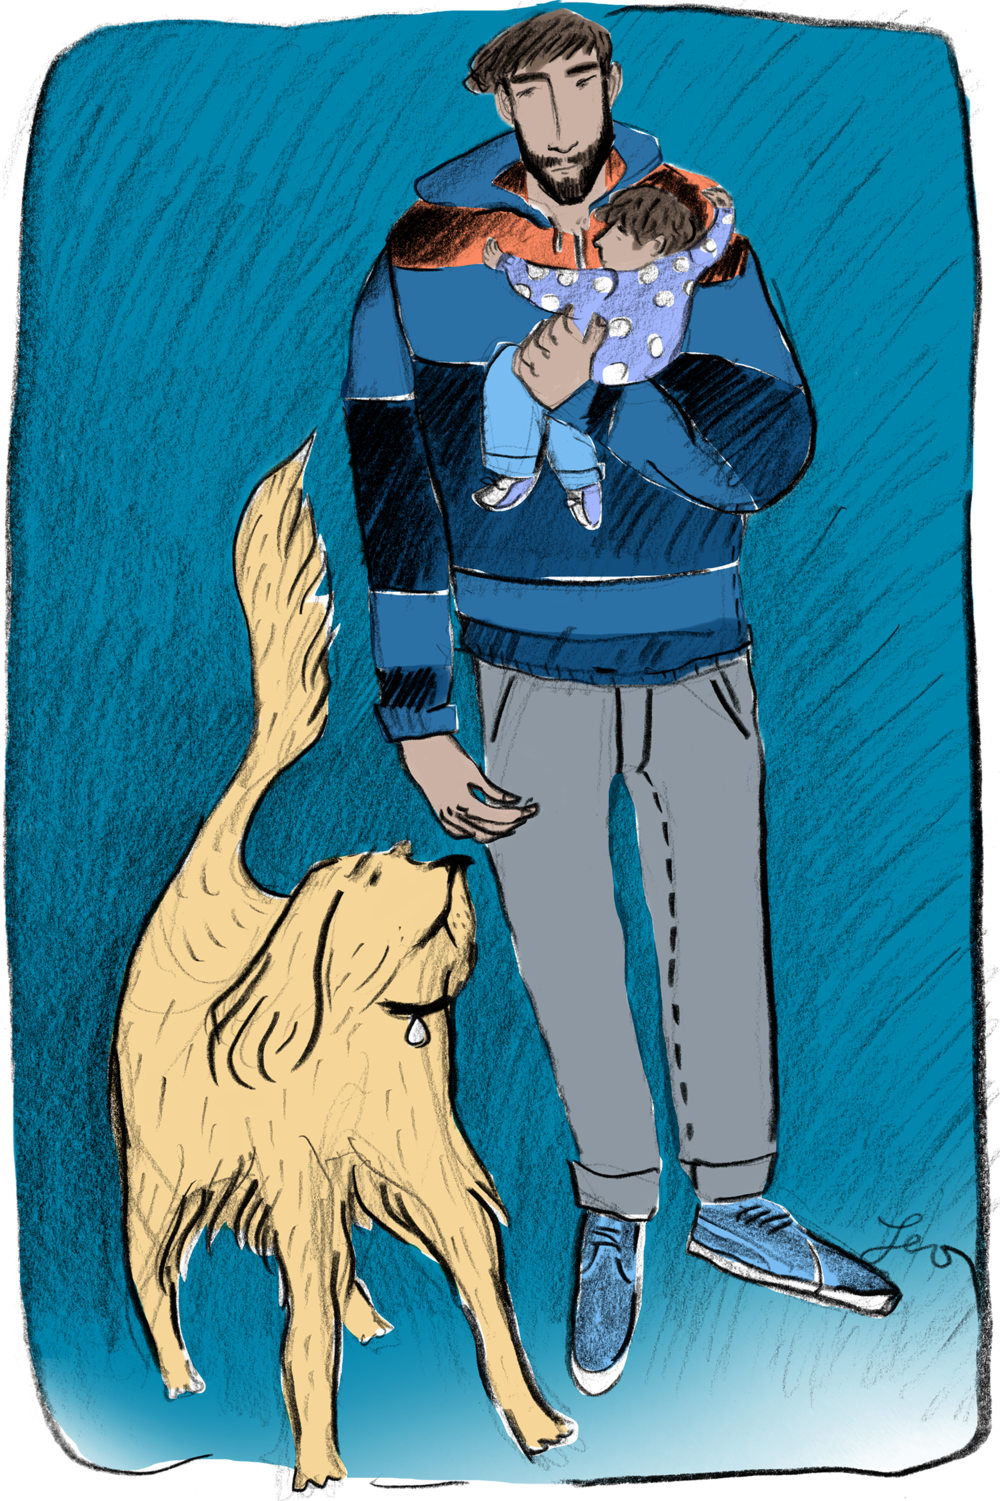 Leo Greenfield  shares a street sketch of man and his best friend.